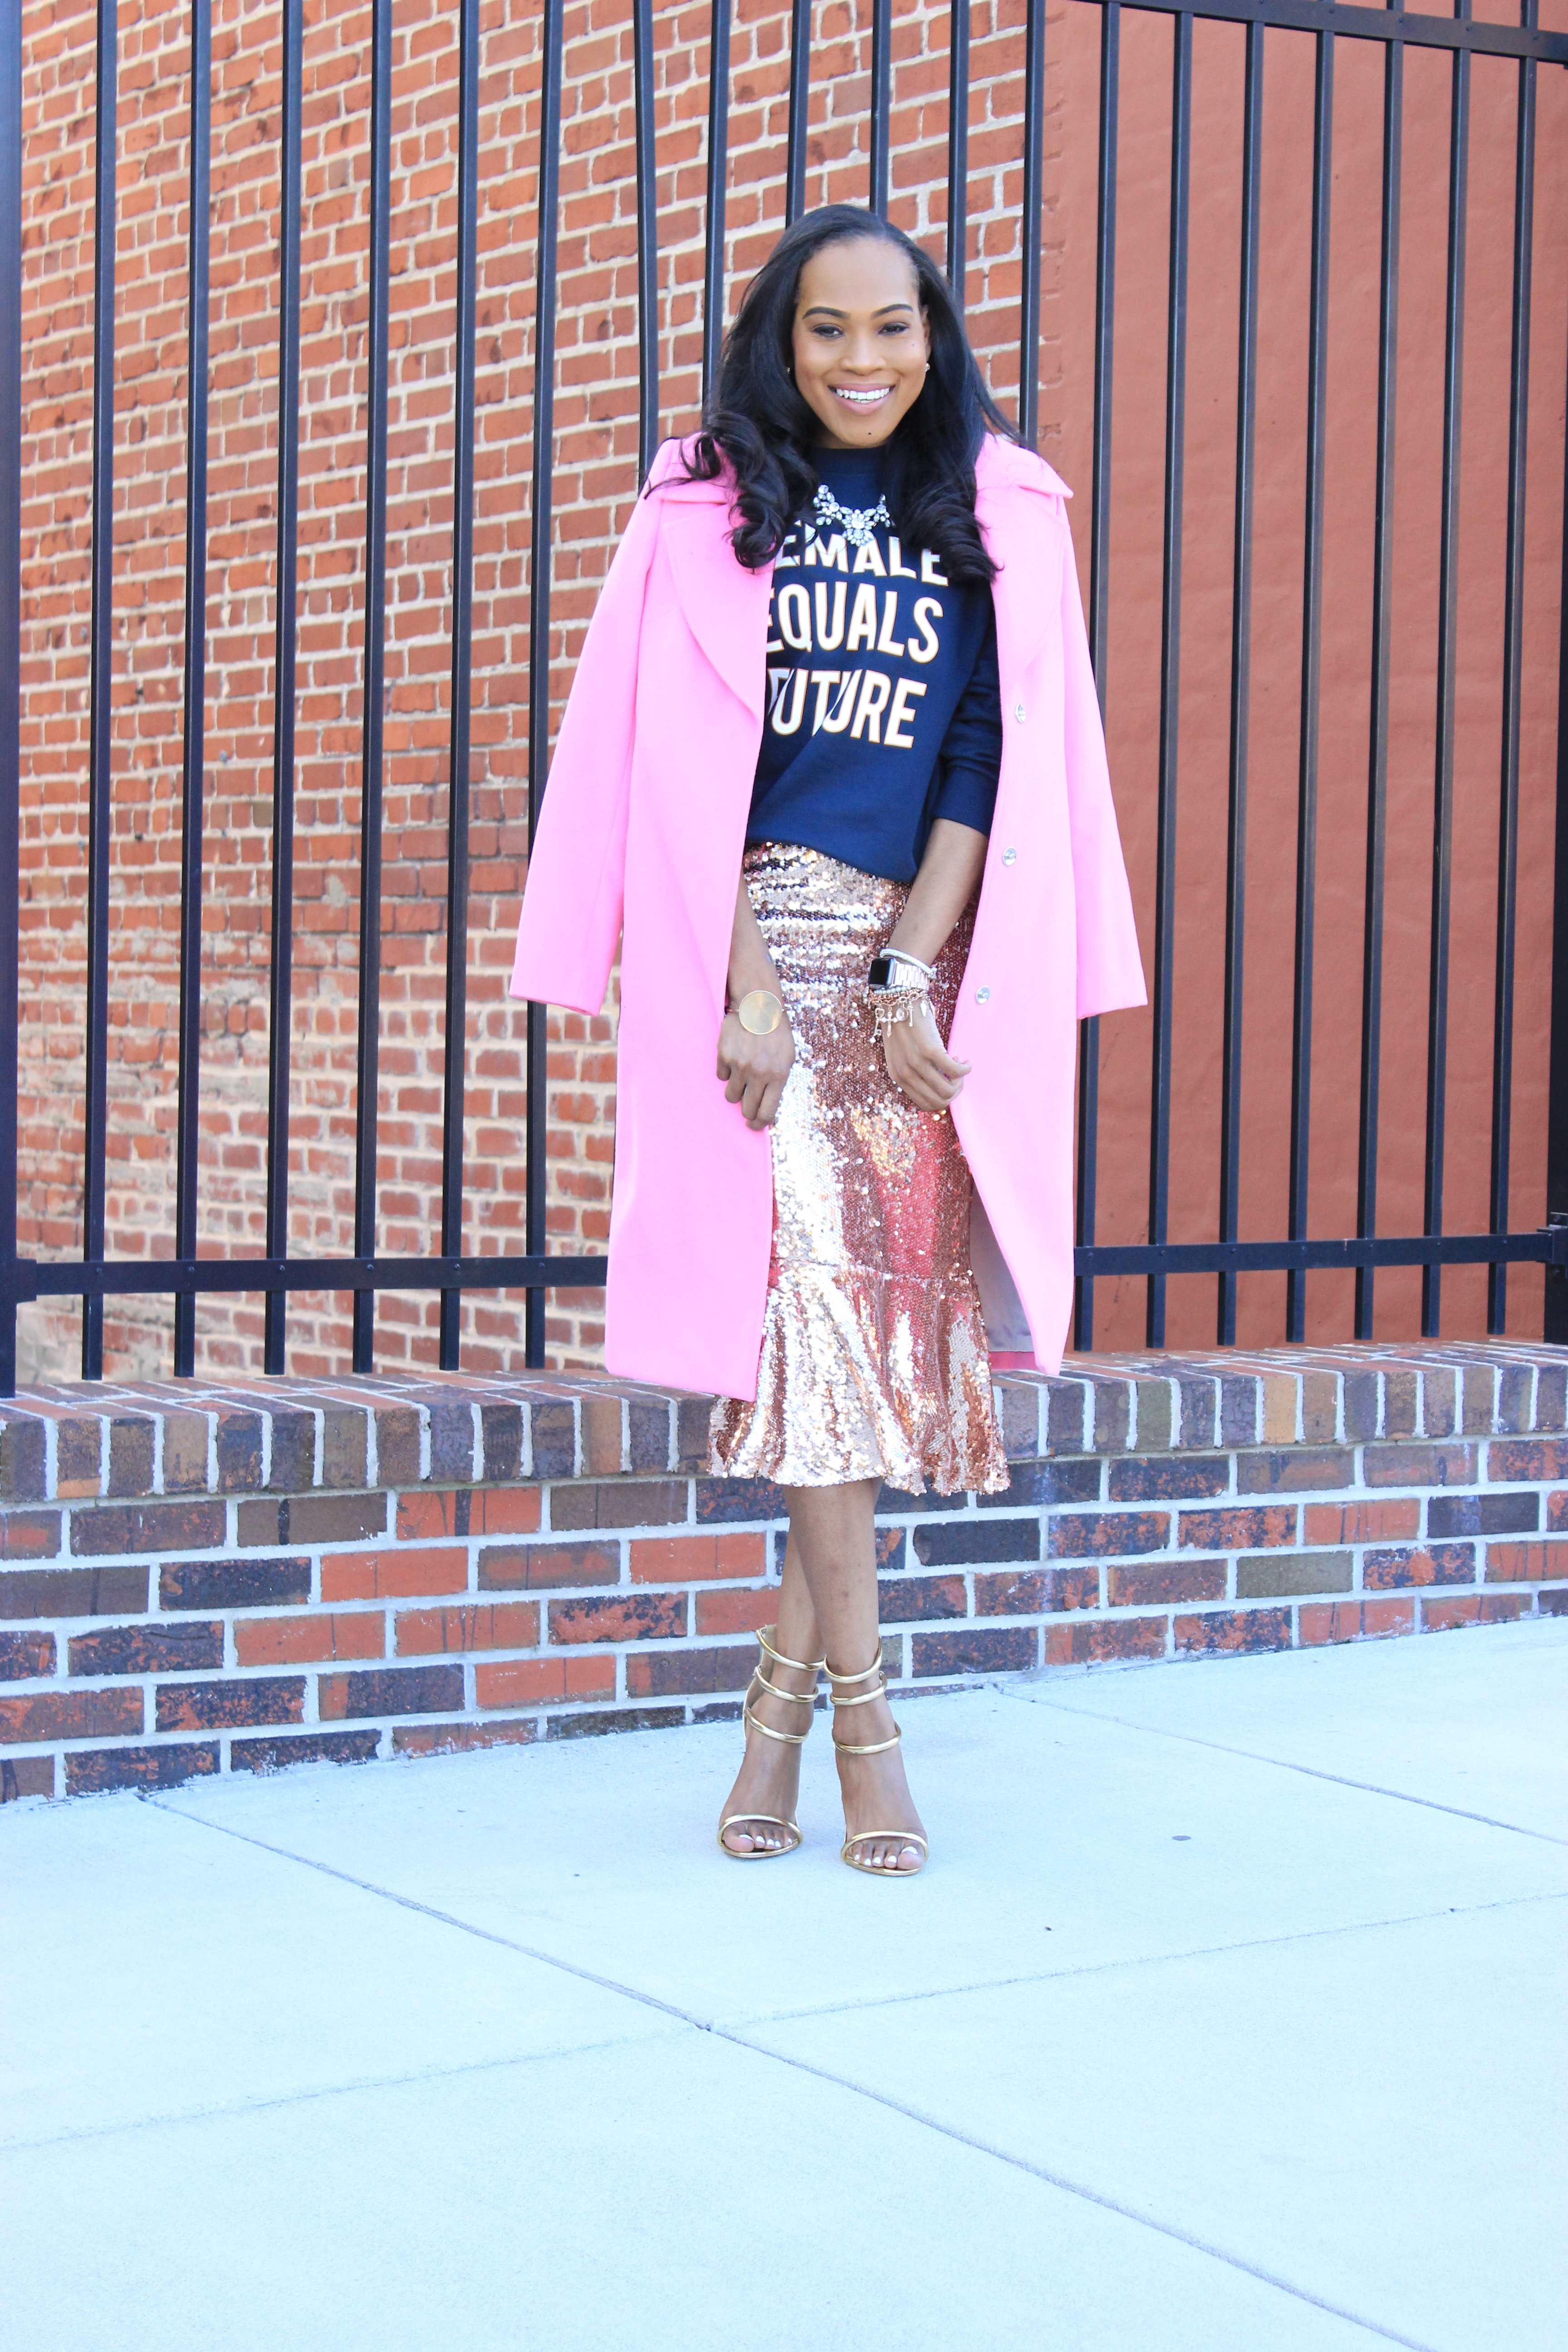 Style-Files-HM-Female-Equals-Future-Oversized-Sweatshirt-Boohoo-Rose-Gold-Sequin-Skirt-Trumpet-Hem-boohoo-Jasmine- Sequin-Ruffle-Hem-Midi Skirt-Public-Desire-Aisha-Gold-Strappy-Heeled- Sandals-Miss-Selfridge-Tailored-Hot-Pink-Jacket-oohlalablog-10